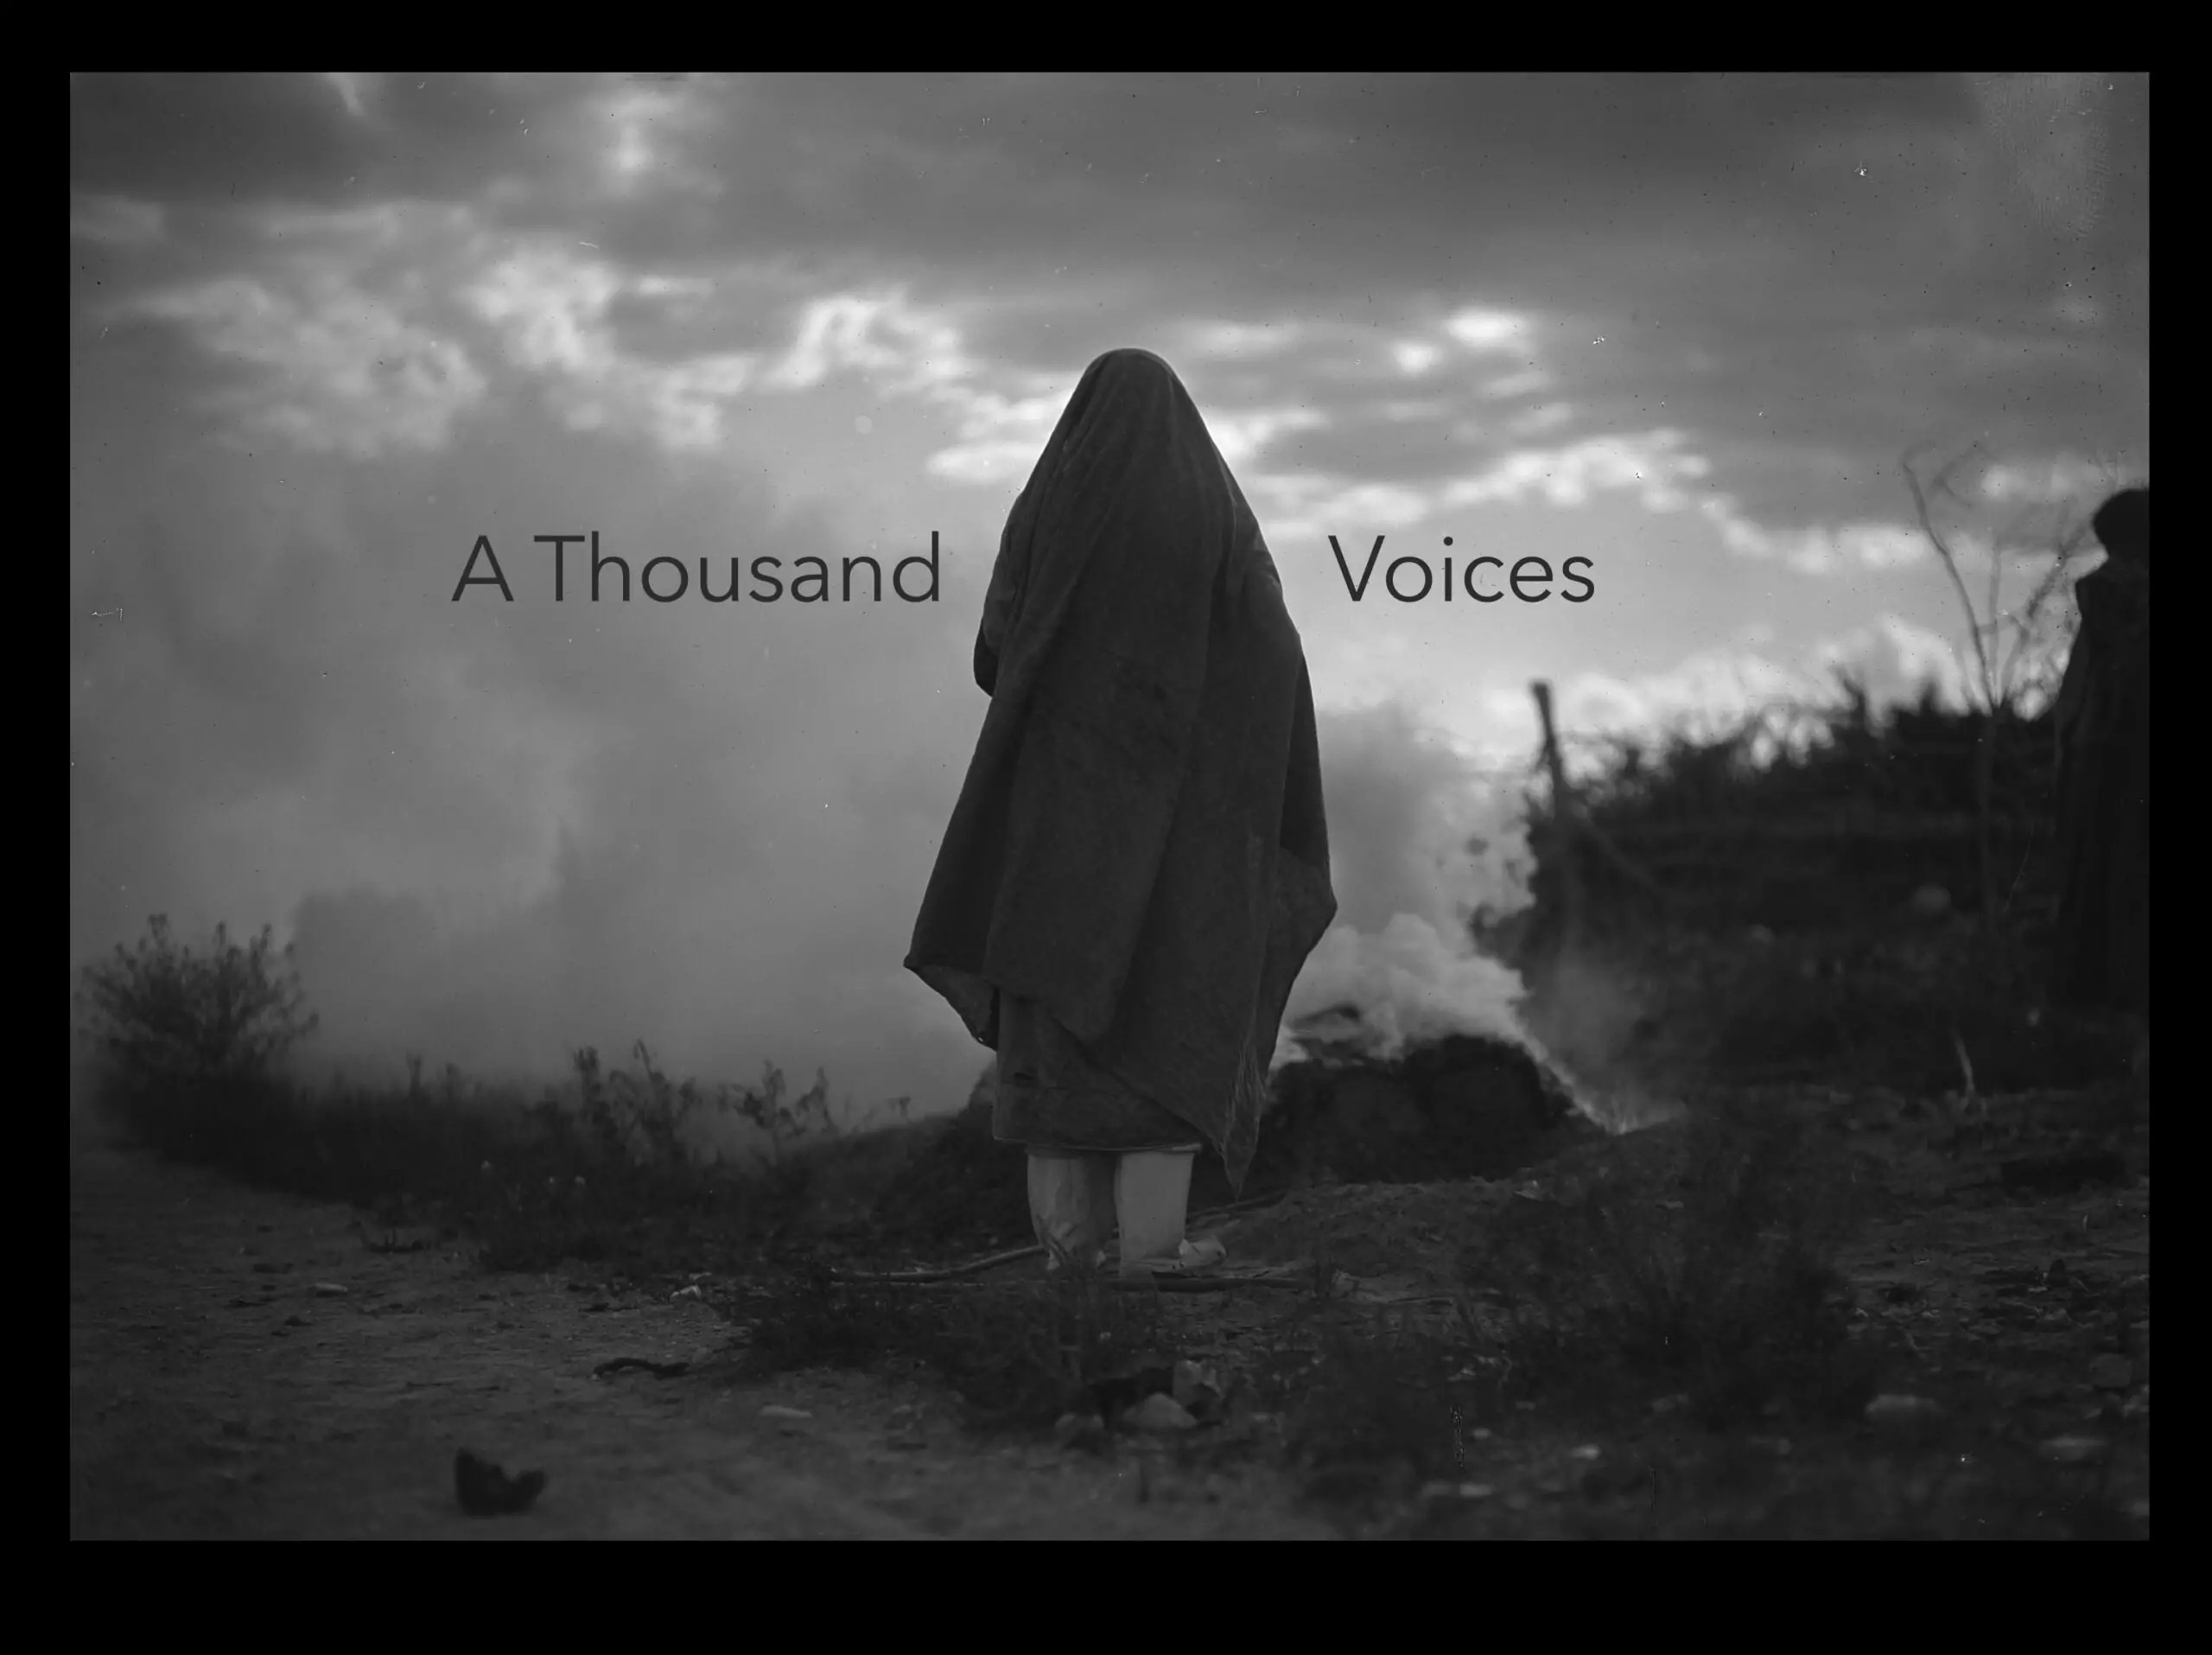 A Thousand Voices Poster